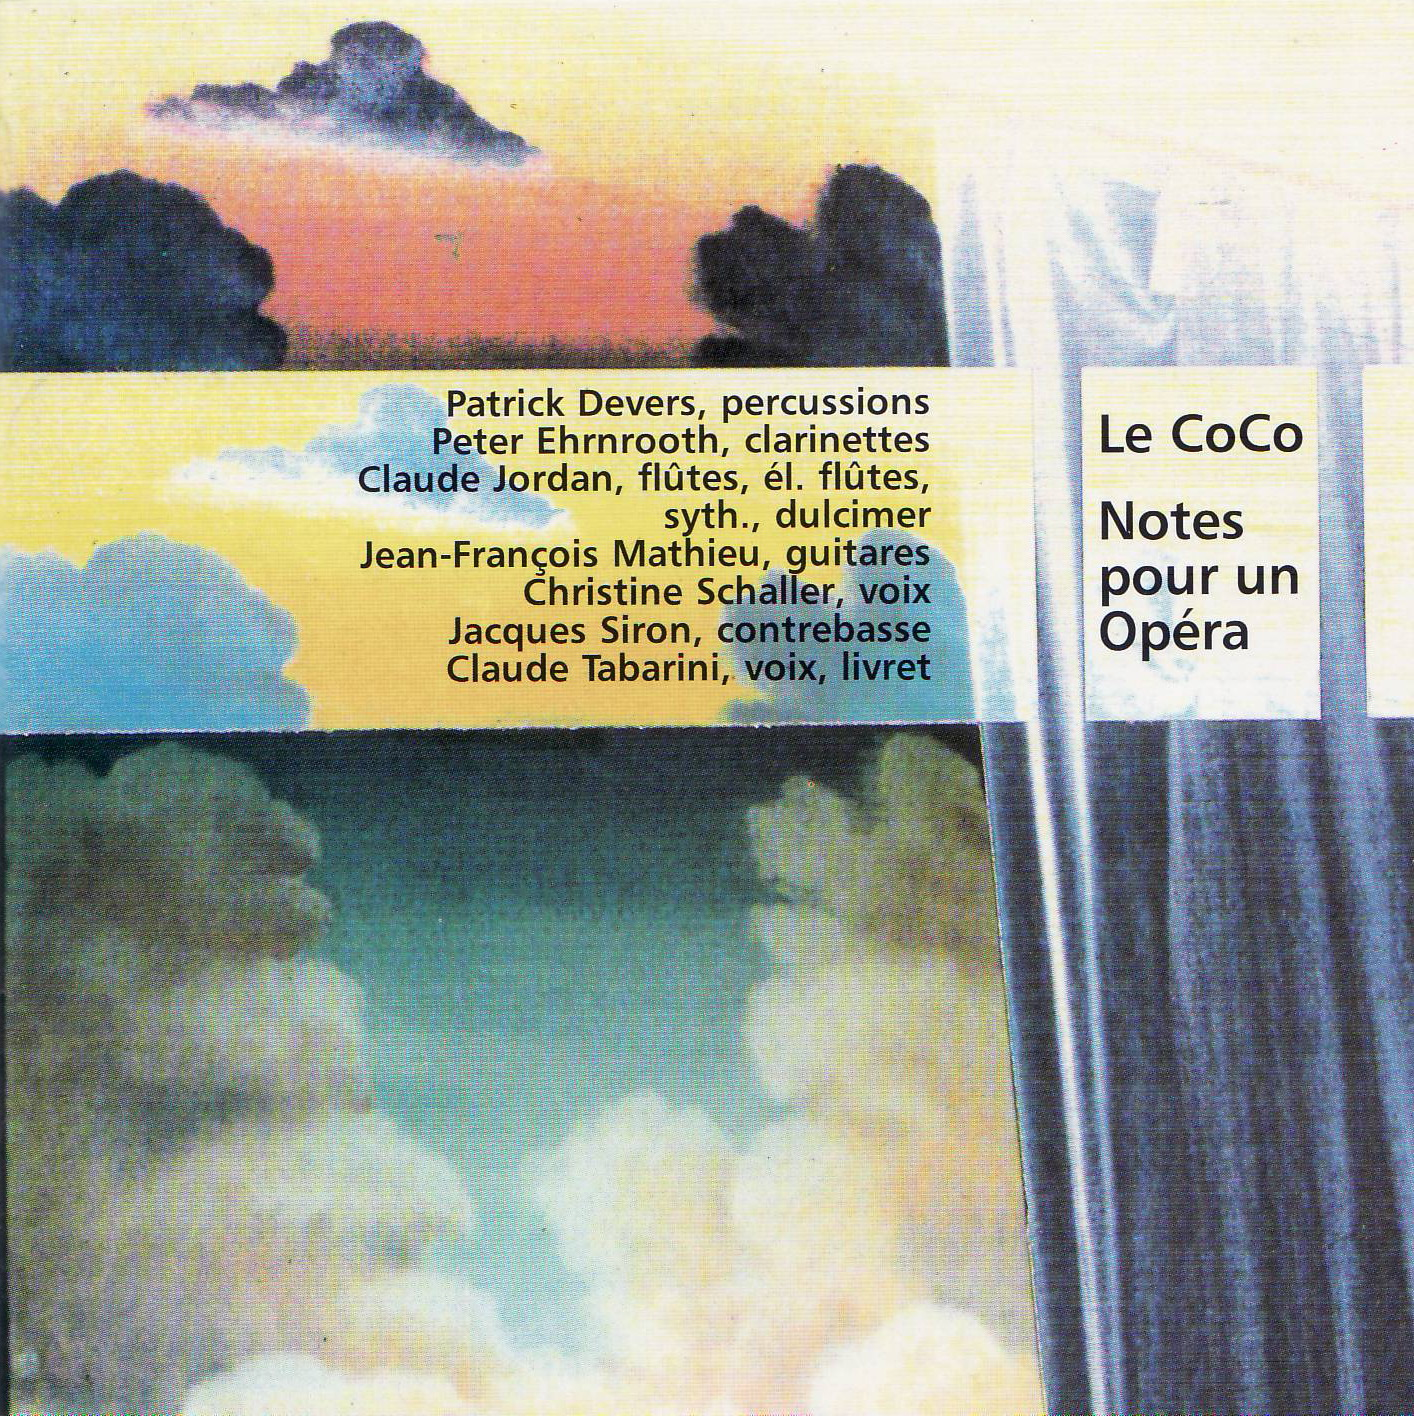 Le CoCo poch CD NPO recto small